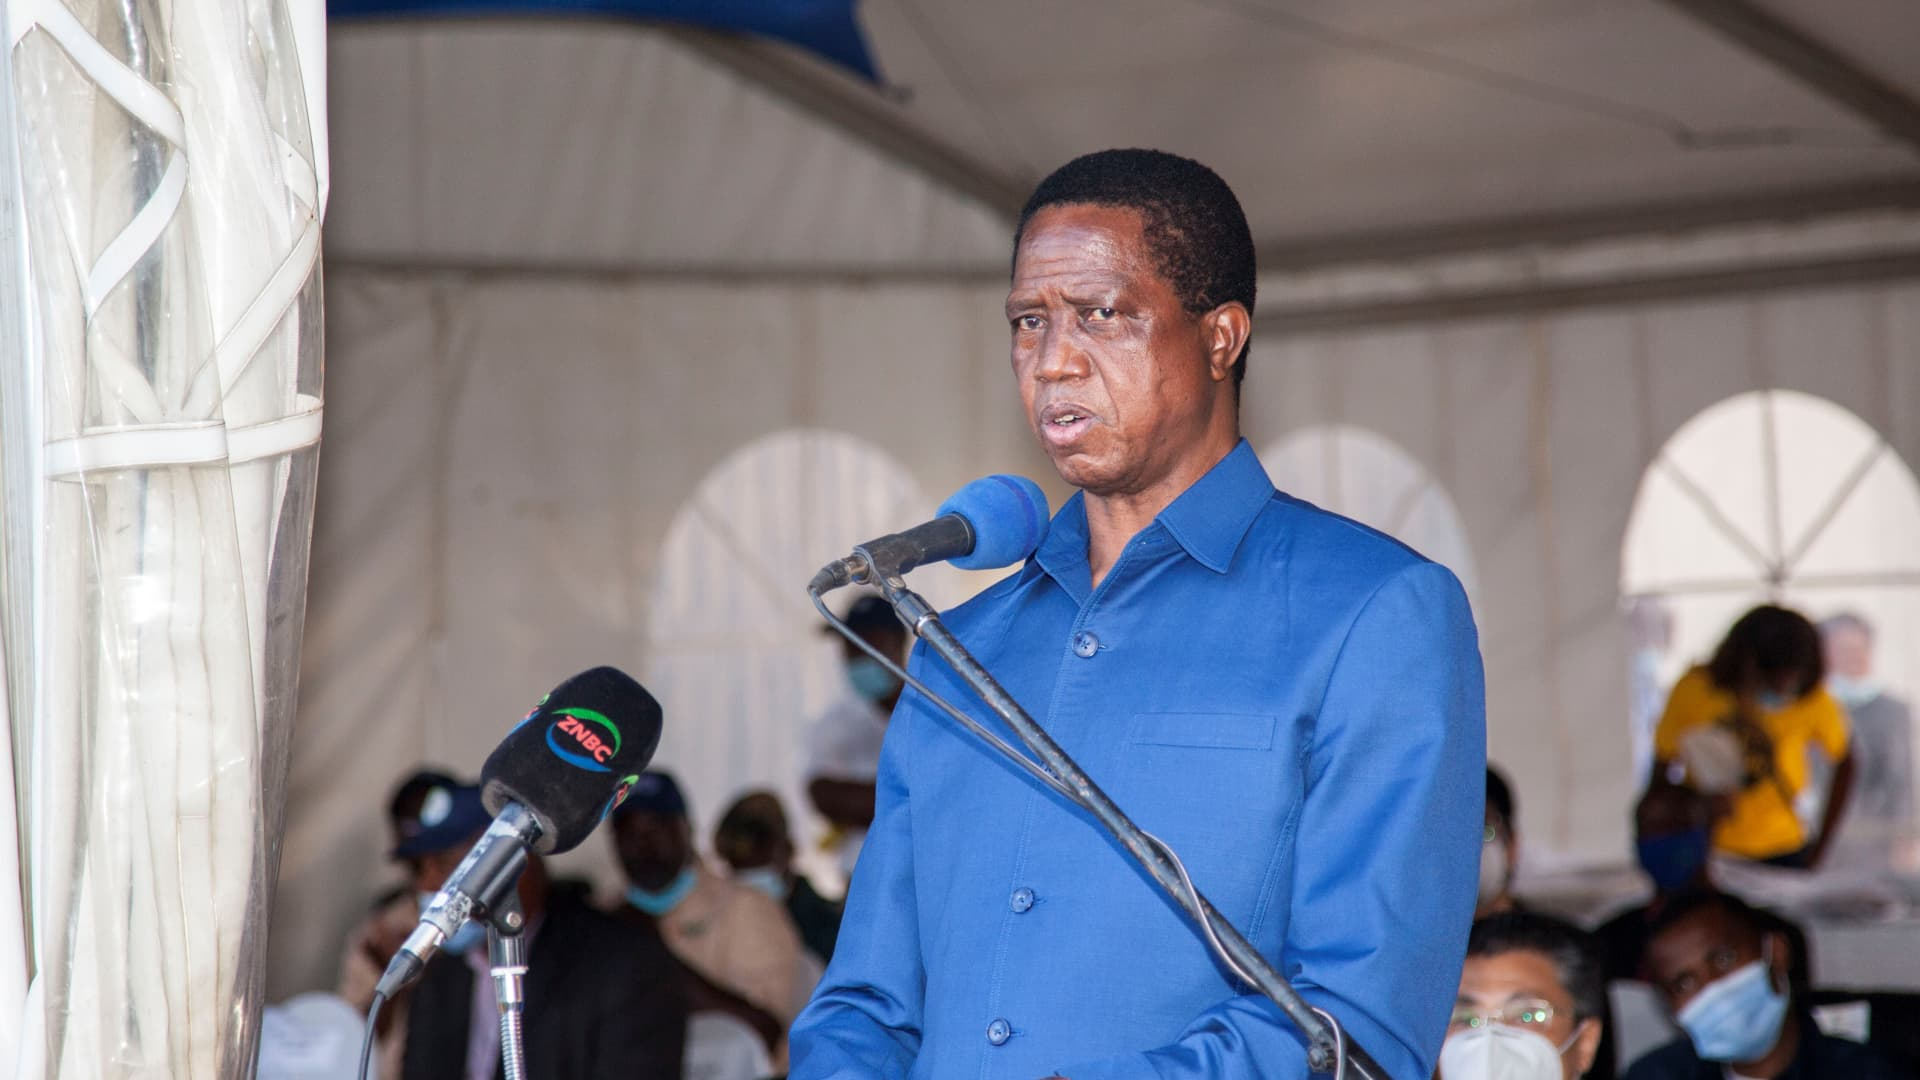 CHONGWE (ZAMBIA), Nov. 13, 2020 (Xinhua) -- Zambian President Edgar Lungu delivers a speech at the launch of blueberry export to China in Chongwe, Zambia, on Nov. 13, 2020. Zambia on Friday flagged off its inaugural export of fresh blueberries to China, becoming the first country in southern Africa to enter the huge Chinese market.